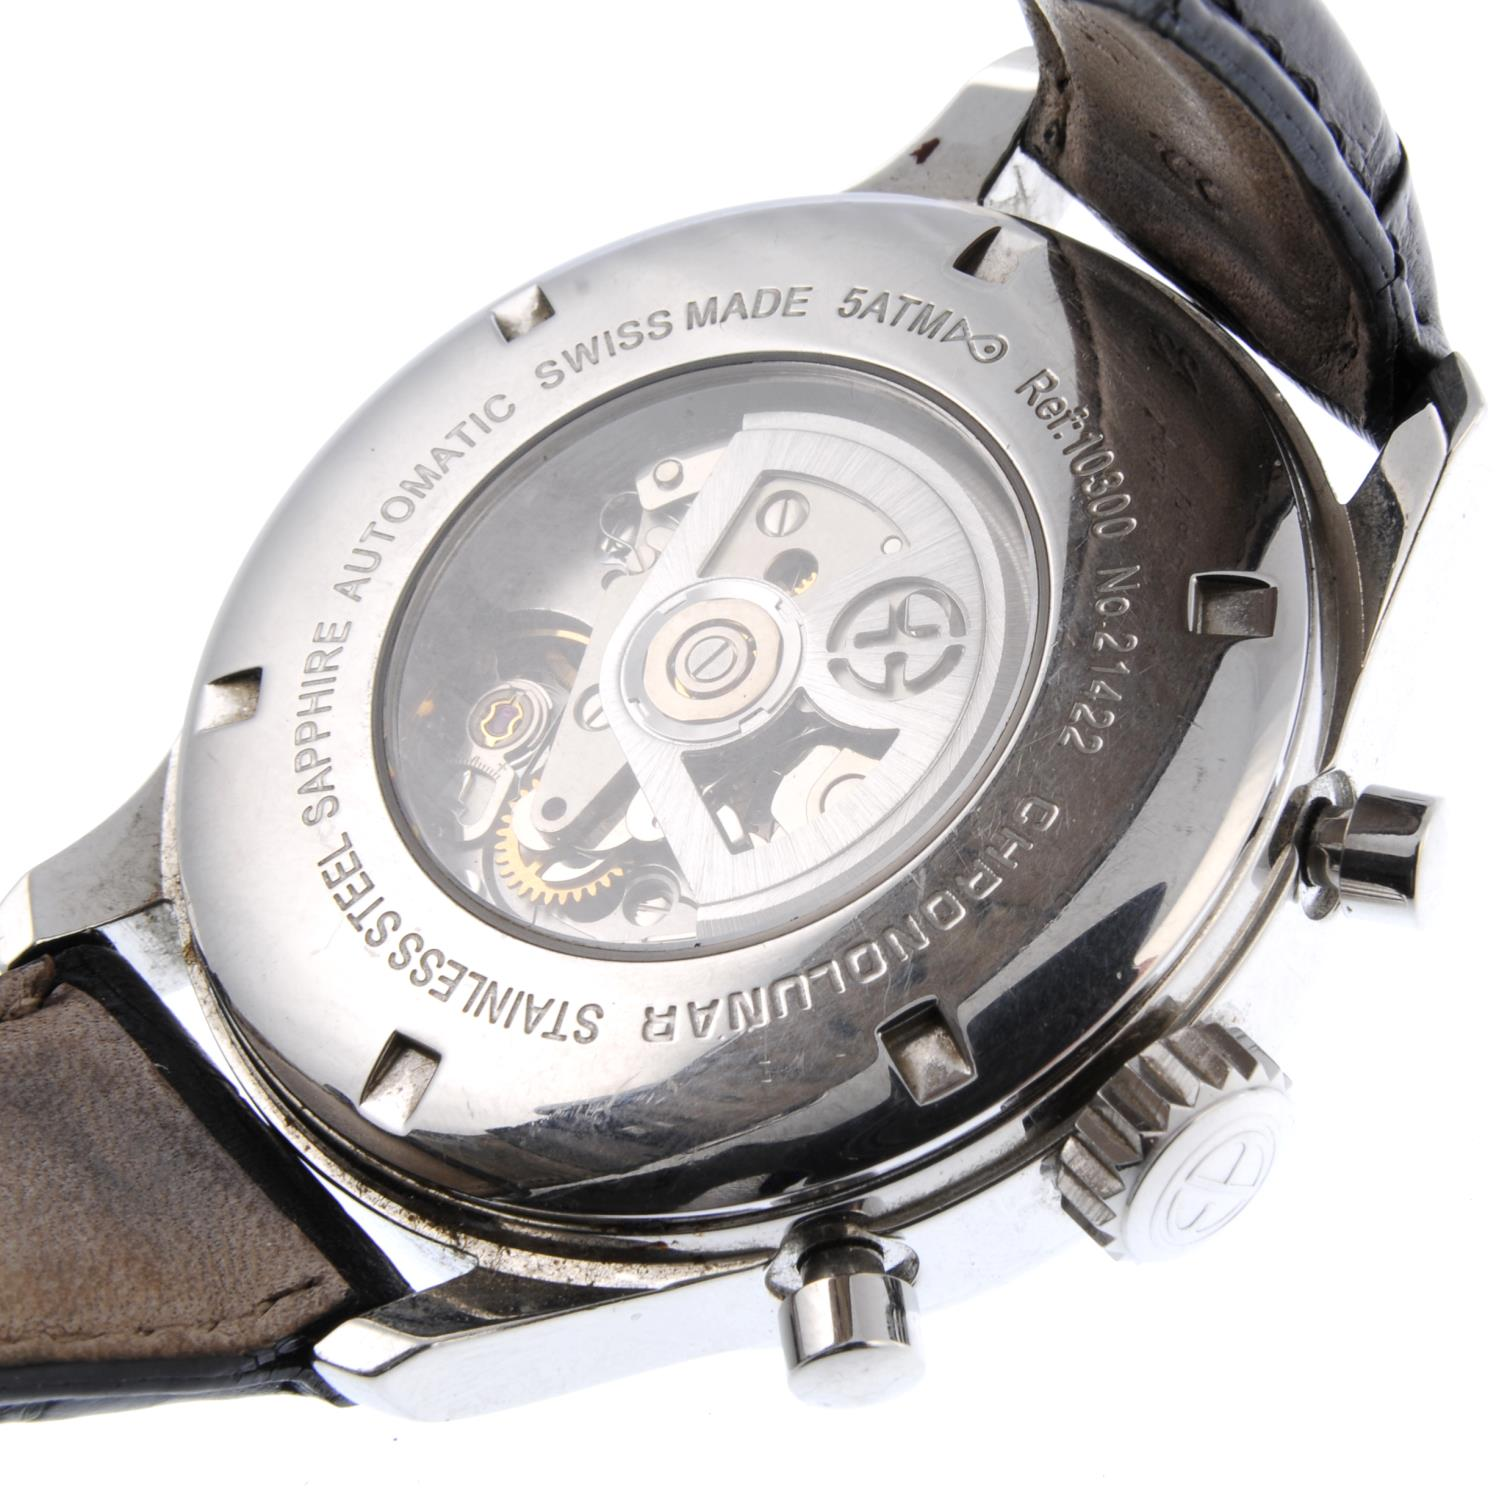 ERNST BENZ - a Chronolunar chronograph wrist watch.Stainless steel case with exhibition caseback. - Image 3 of 4